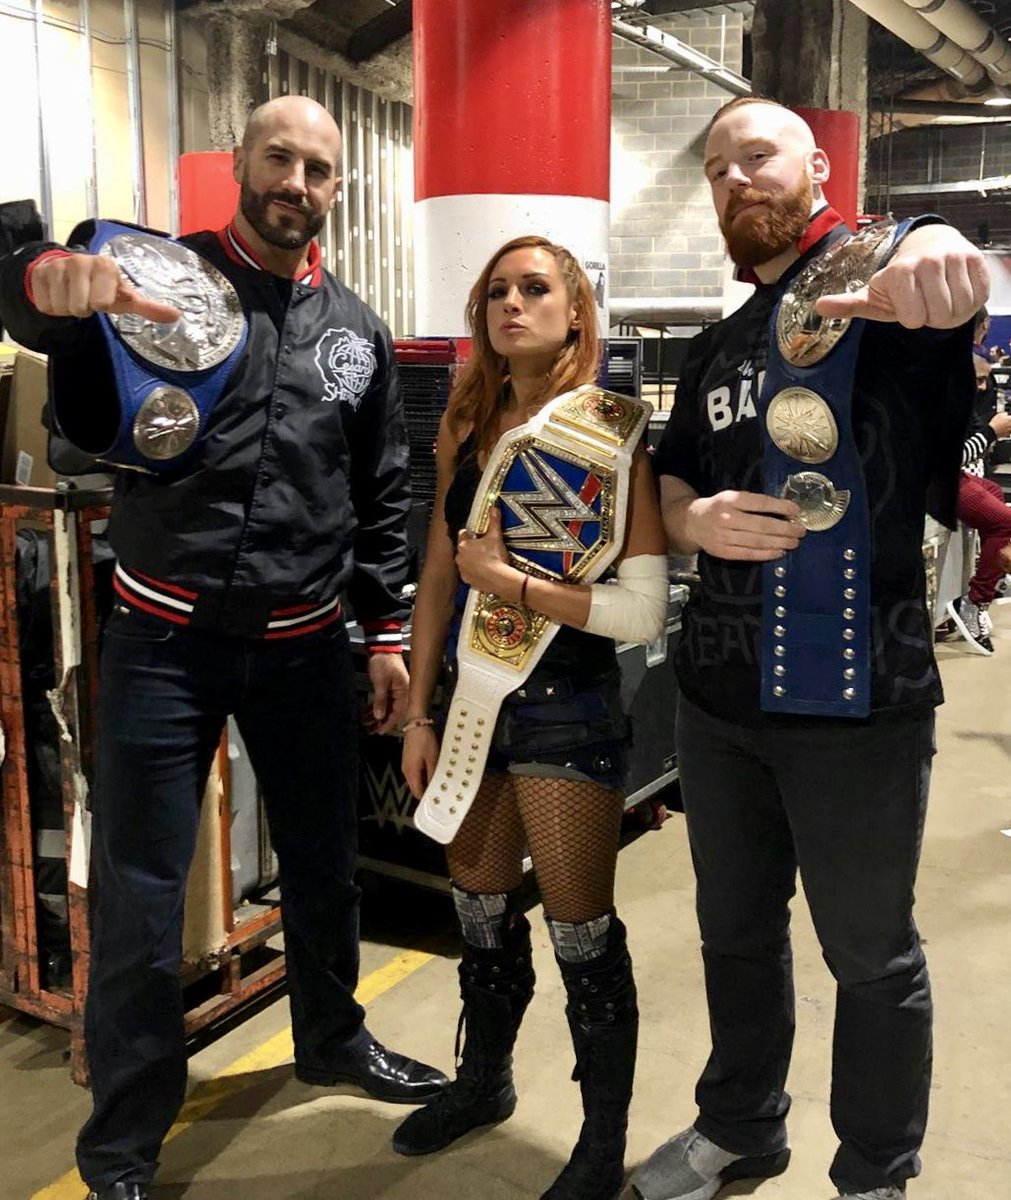 RT @WWESheamus: We are the champions. #SD1000 https://t.co/BRIiand4dc